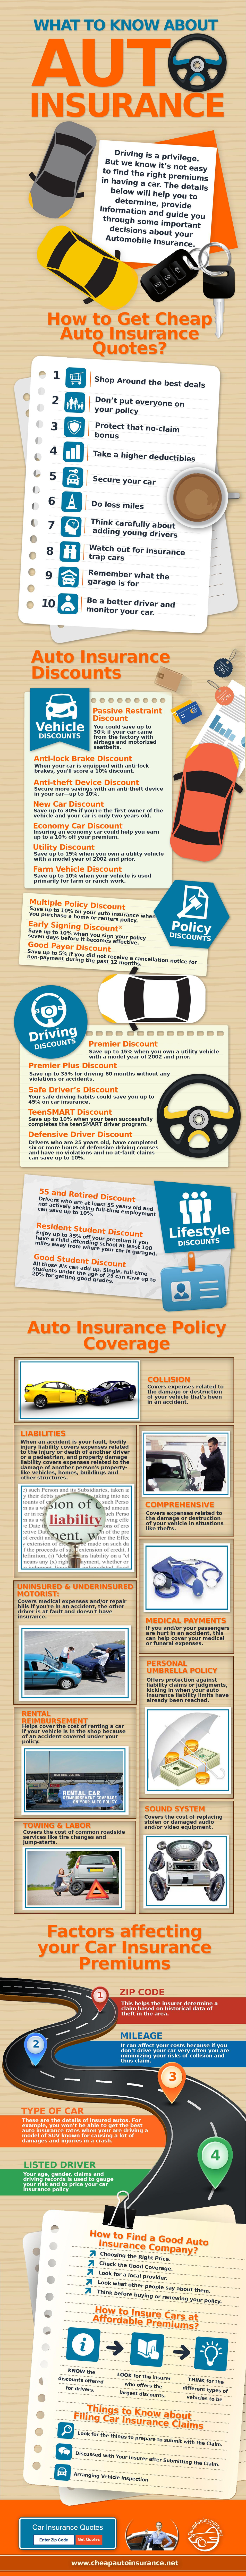 What to Know about Automobile Insurance